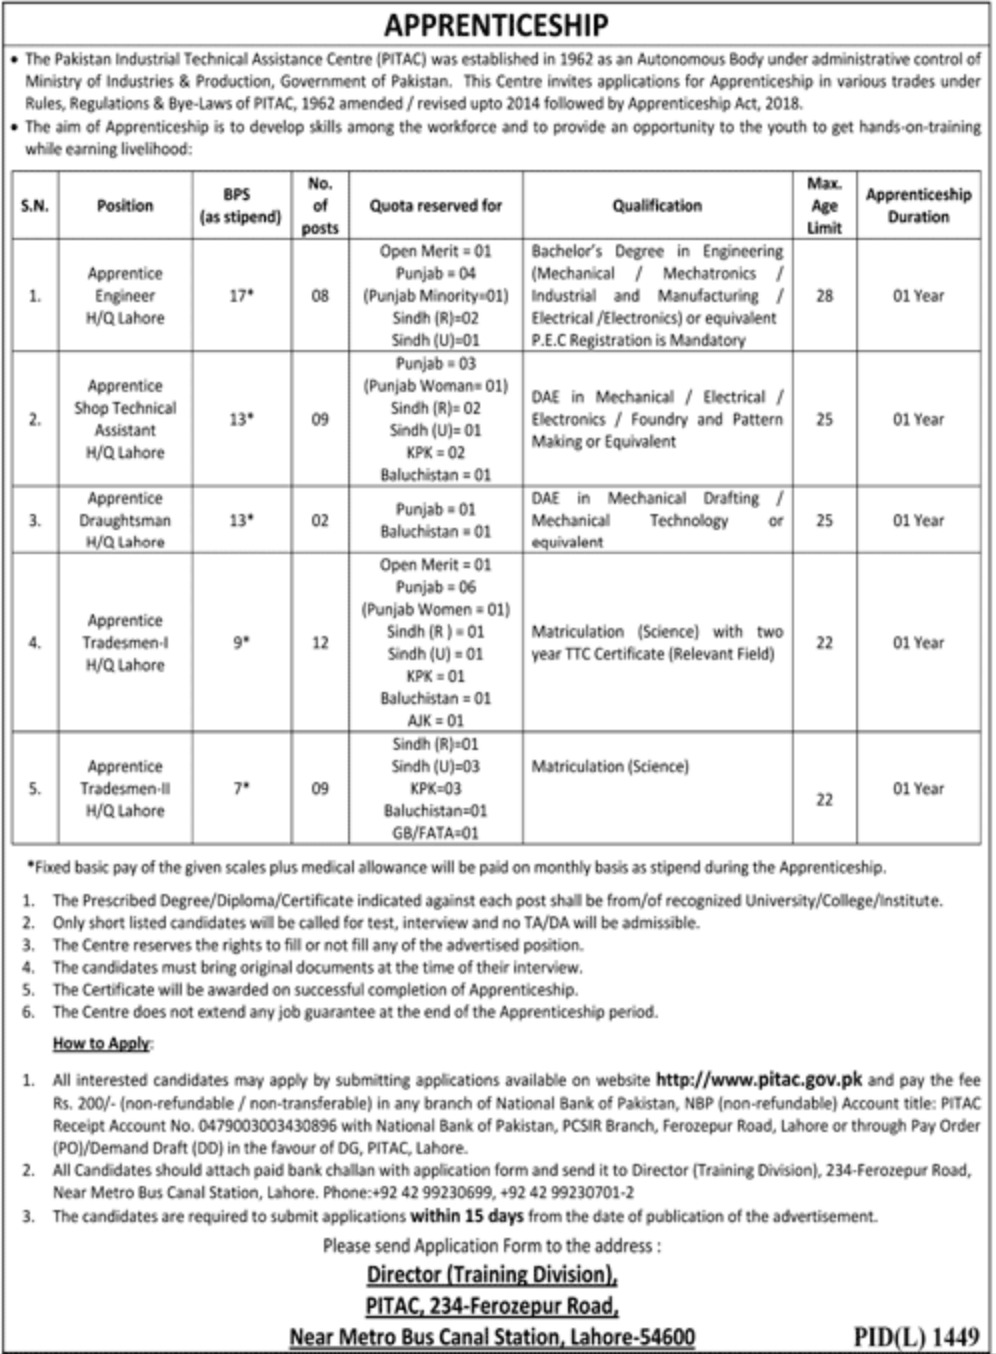 Pakistan Industrial Technical Assistance Centre PITAC Jobs November 2020